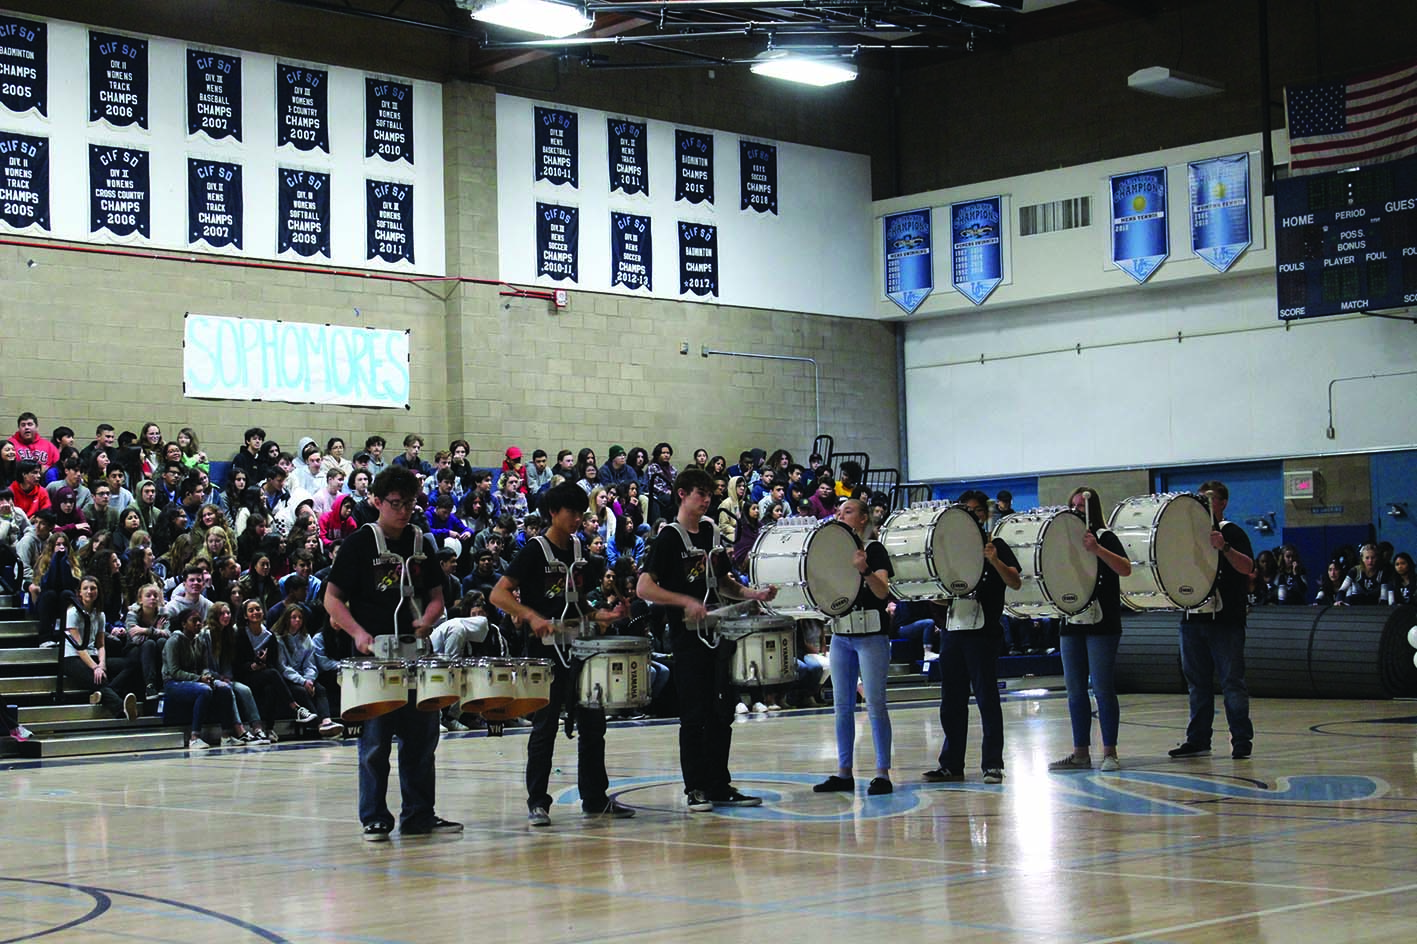 Fall Drumline Members Michael Haley, Alex Tong, Jeff Livers, Emily Pilkington, Anthony Dinh, Cassandra Bristol and Benji Davis, some of whom are in Winter Percussion, perform at the Winter Pep Rally.